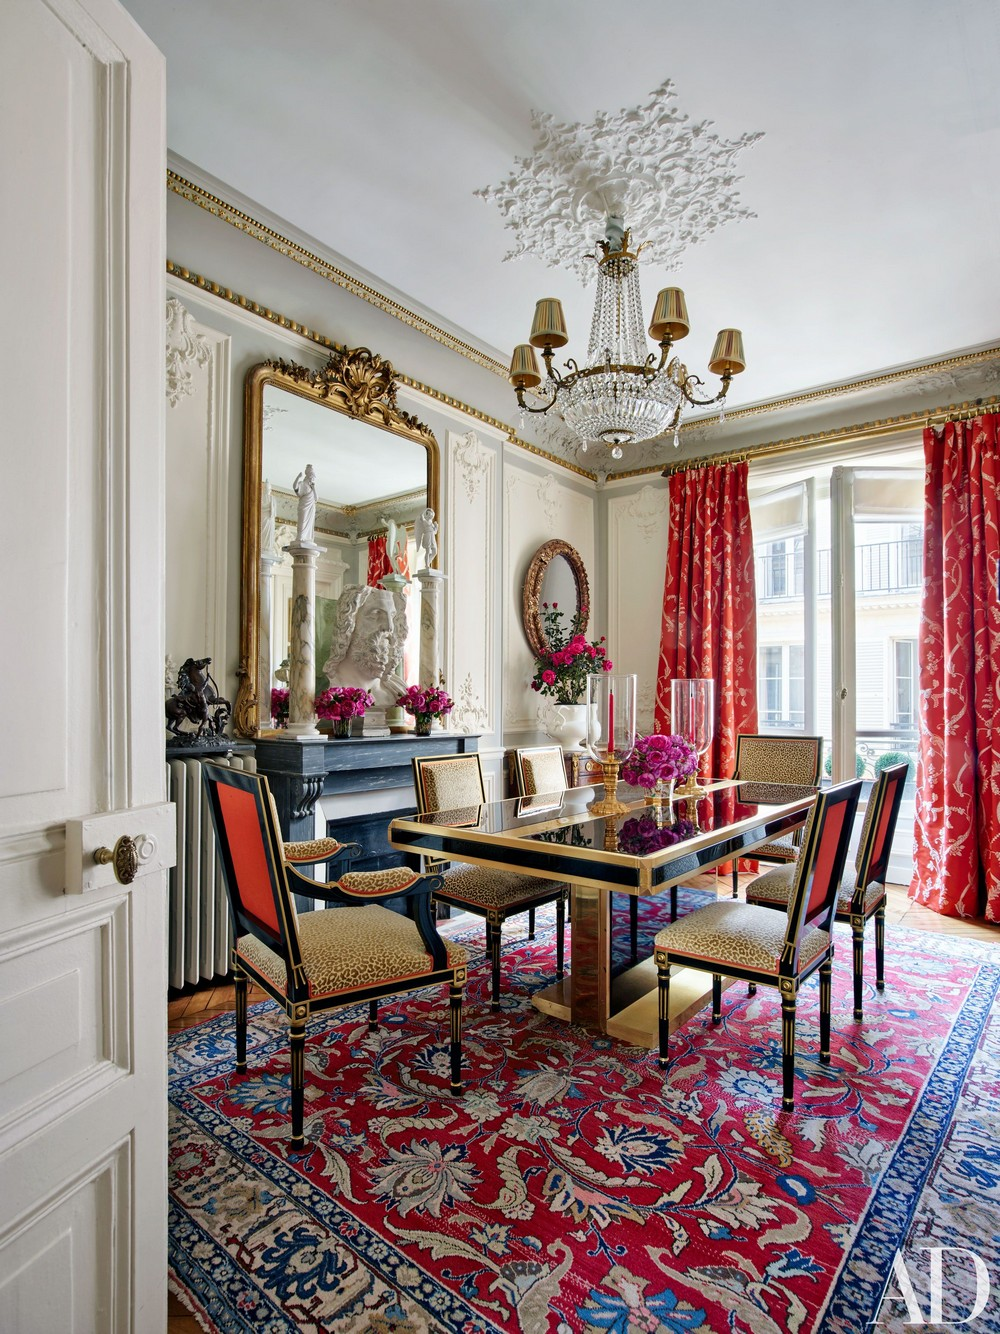 Timothy Corrigan: Classic Dining Rooms With A Royal Touch timothy corrigan Timothy Corrigan: Classic Dining Rooms With A Royal Touch 4 AD